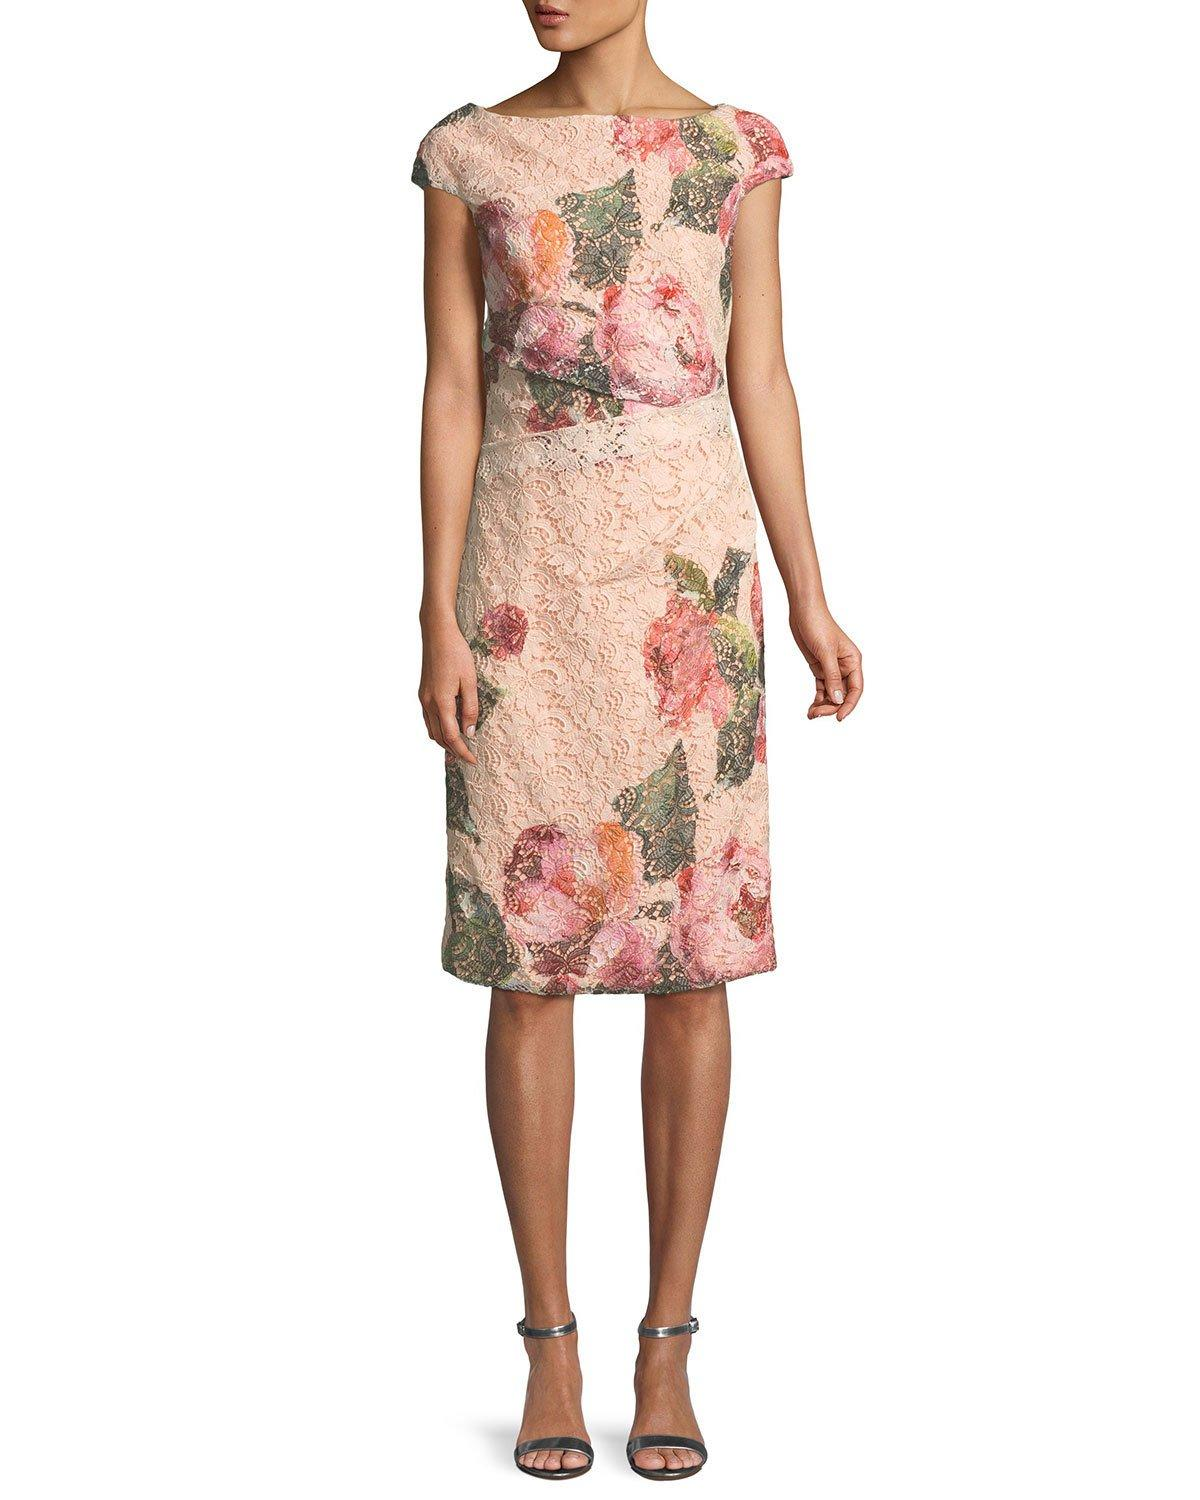 e9b67caf67ca Blush Lace Cocktail Dress With Sleeves - raveitsafe